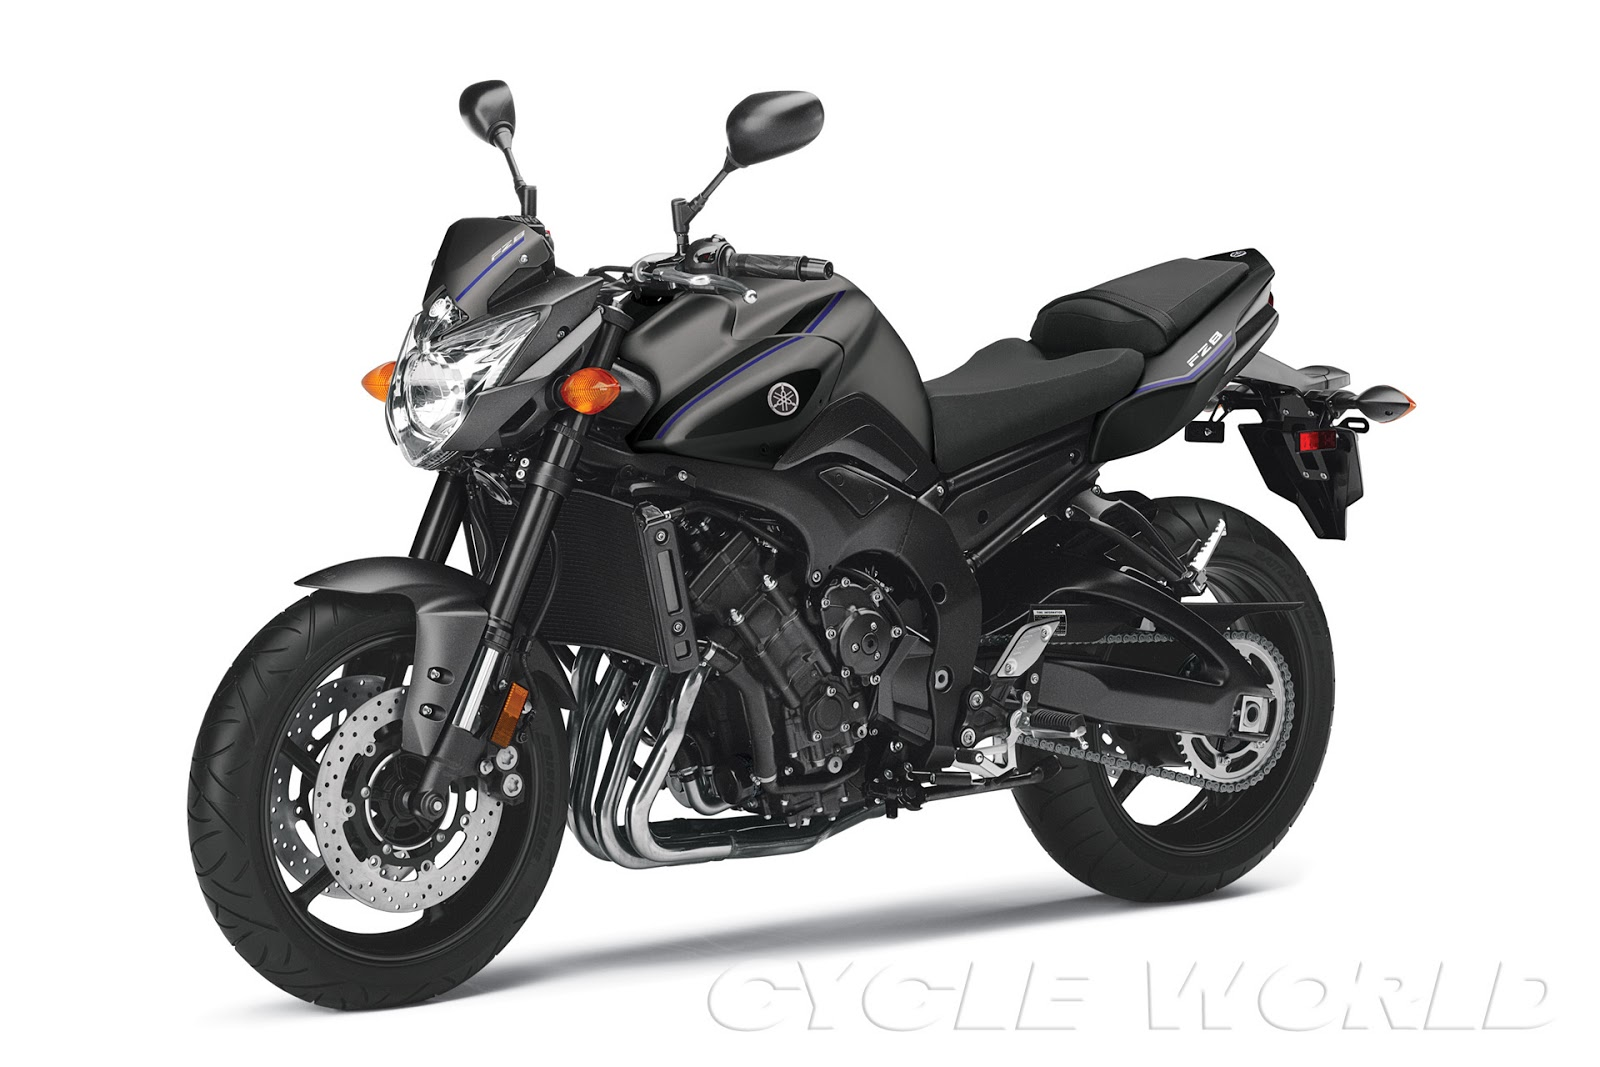 warrior was released in 2013 yamaha fz8 picture of motor. Black Bedroom Furniture Sets. Home Design Ideas